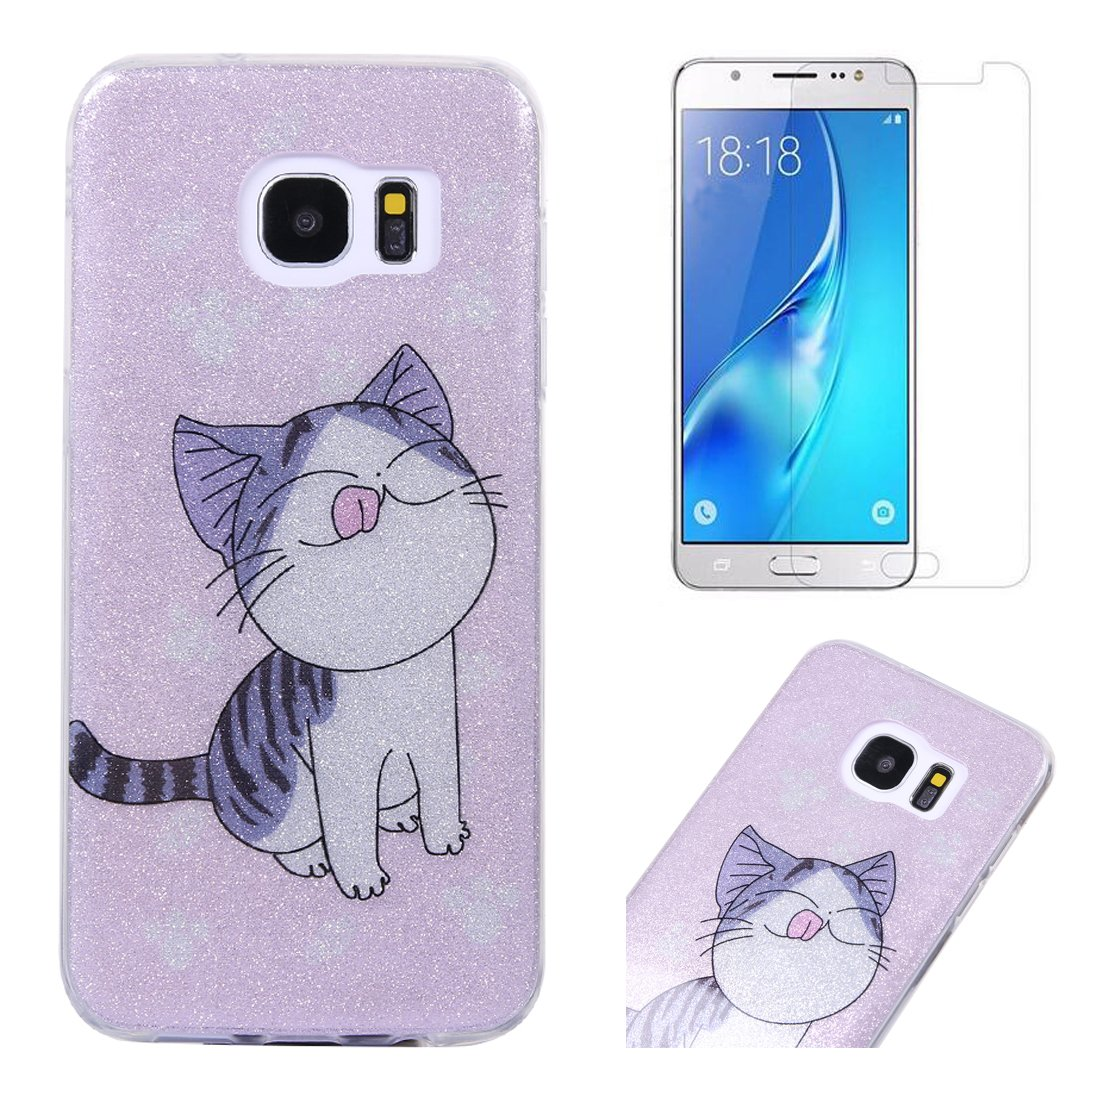 For Samsung Galaxy S7 Case with Screen Protector, OYIME Glitter Bling Design Ultra Thin Slim Fit Protective Back Cover Soft Silicone Rubber Shell Drop Protection Anti-Scratch Transparent Bumper and Screen Protector (Tiger)